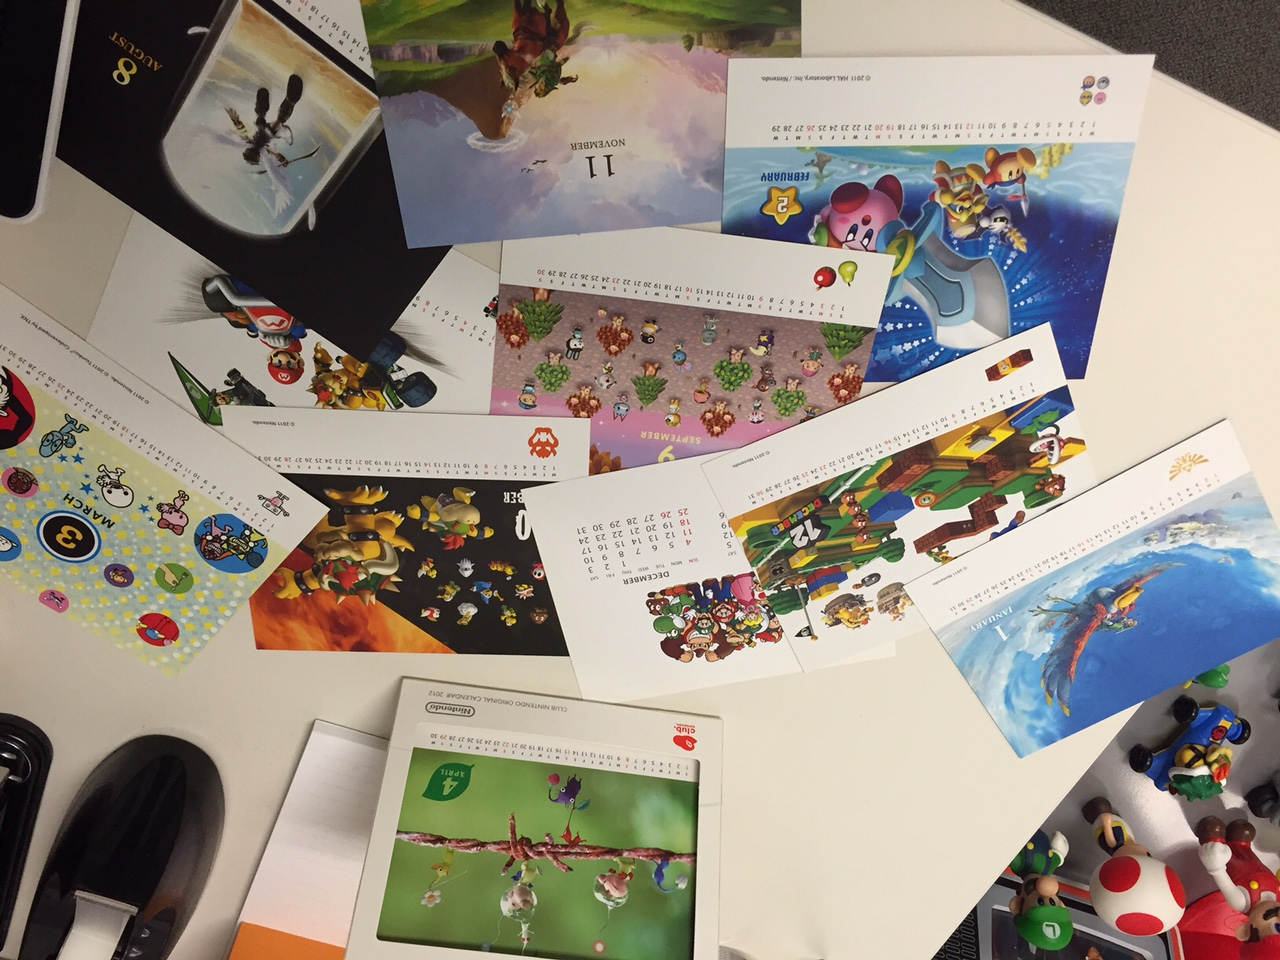 A really cool Club Nintendo desk calendar from 2012 that I still display at work. The dates are wrong, but I love the artwork.